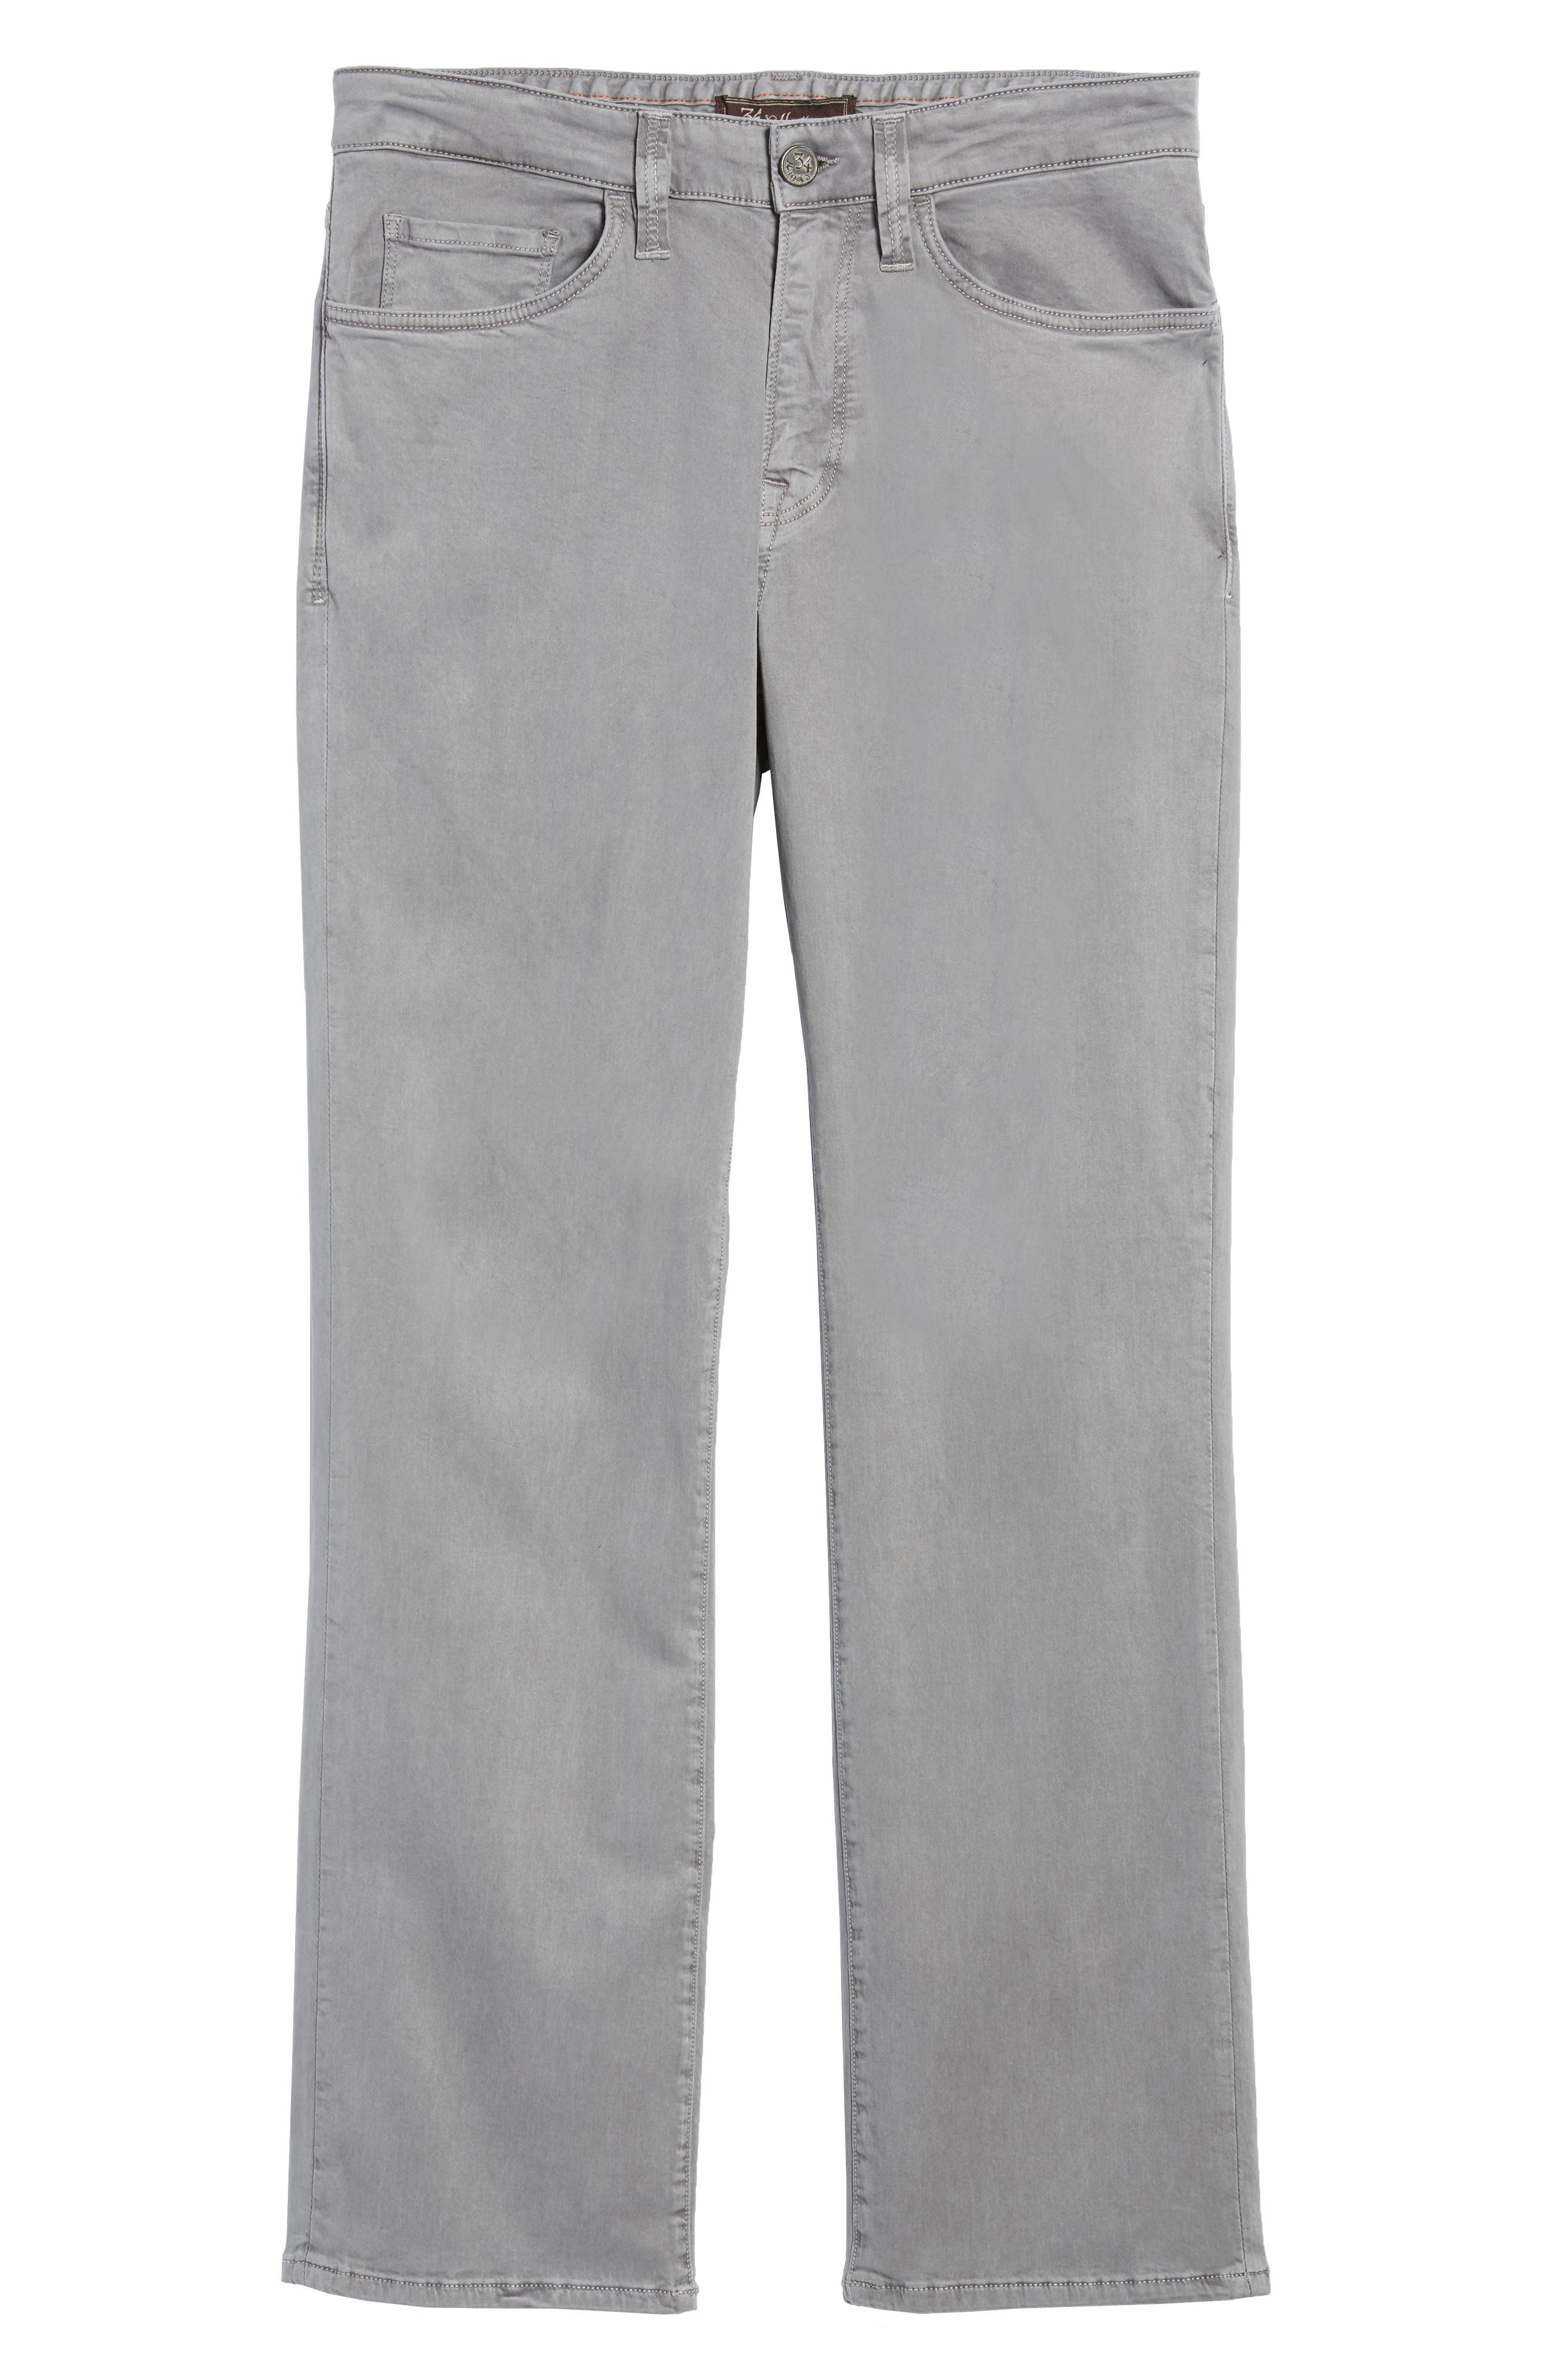 Charisma Relaxed Fit Twill Pants,                             Alternate thumbnail 6, color,                             SHARK TWILL